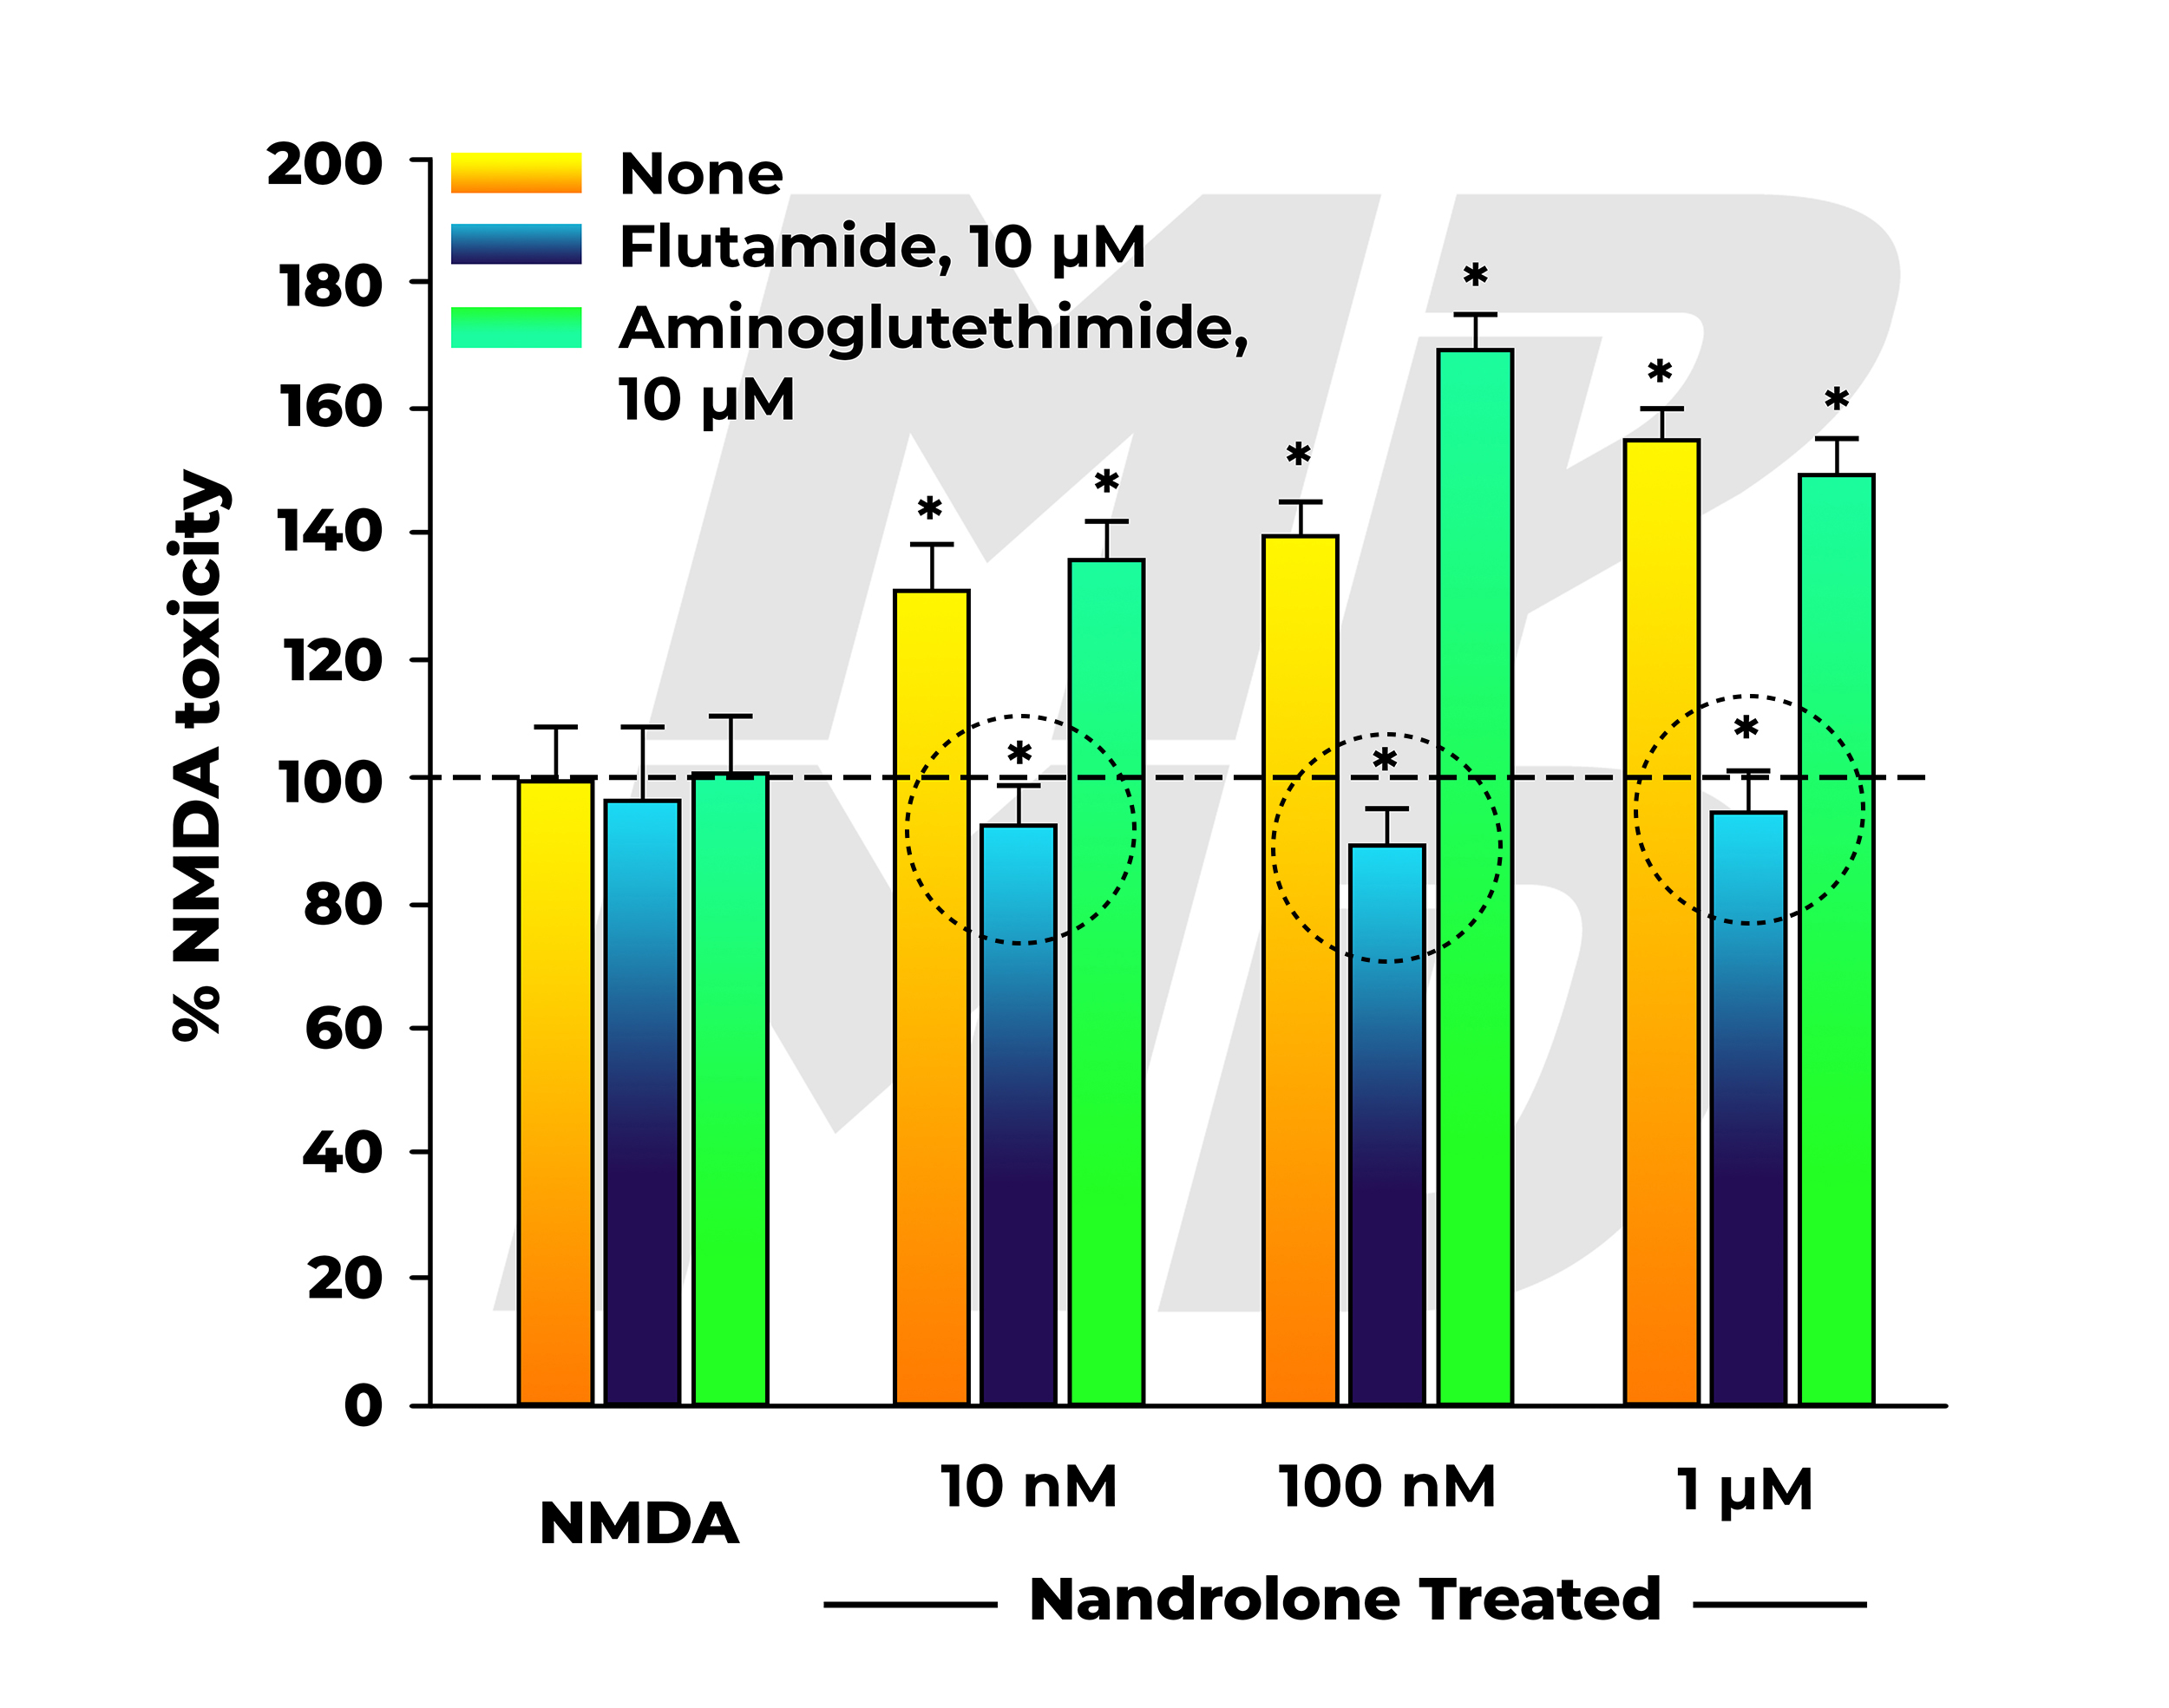 NMDA Neurotoxicity In Nandrolone (19-nortestosterone) Treated Group Co-Administered Nothing, Flutamide, Or Aminoglutethimide - Flutamide Anti-Androgen Activity Highlighted